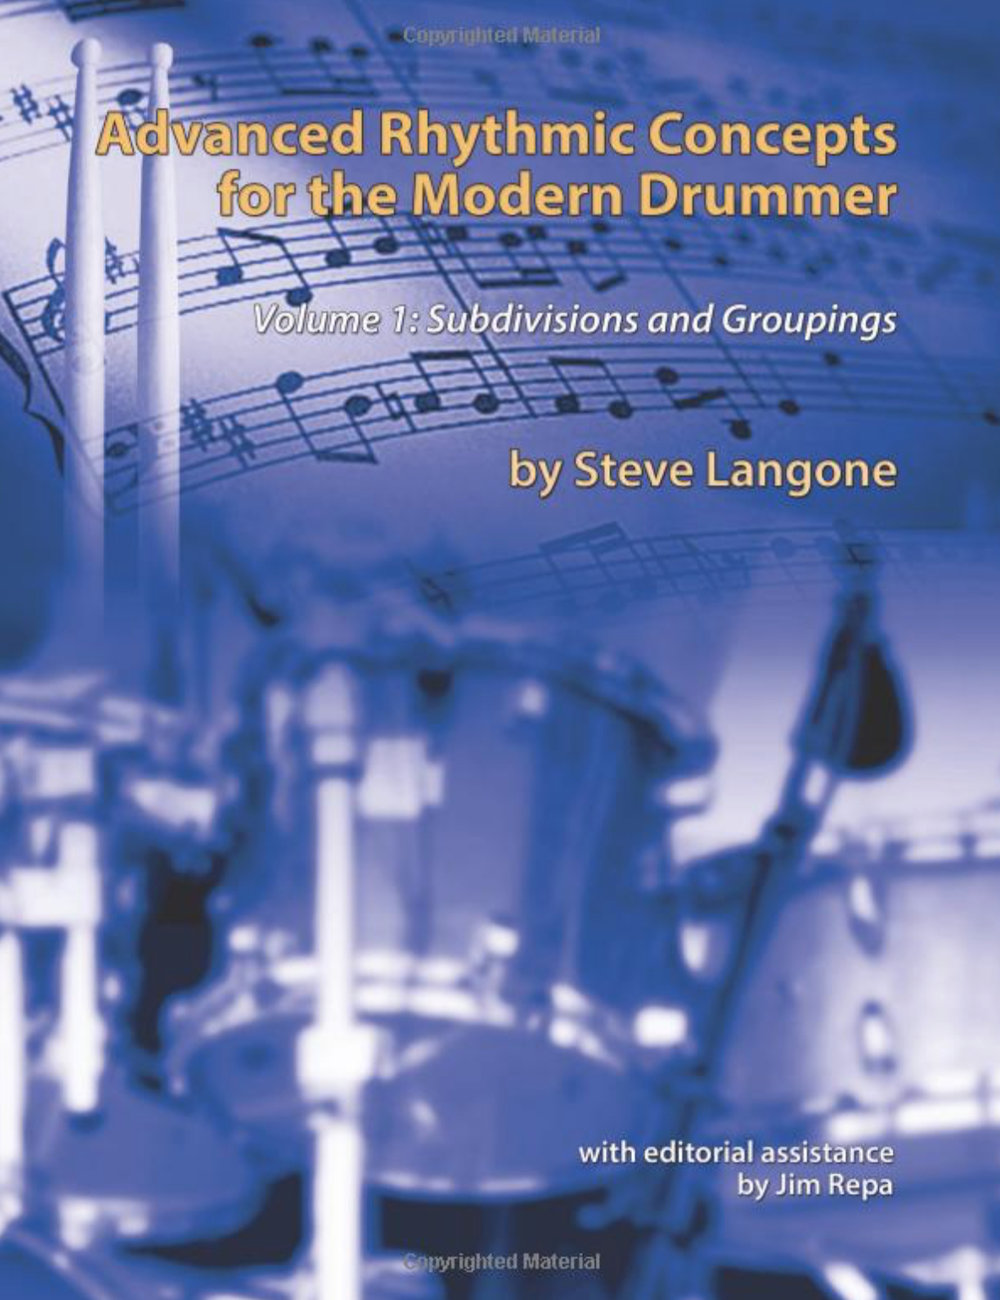 Volume 1 - The book introduces rhythmic concepts that can be used by drummers or any musician to expand his or her rhythmic repertoire for improvisation or composition. It combines concepts taught to the author by Alan Dawson with South Indian Konnakol syllables. It is a comprehensive study of polyrhythms that allows drummers to delve deeply into modern rhythmic concepts.Available from Amazon.comas softcover book.Available from Amazon.comas Digital - Kindle book.Paperback:200 pagesLanguage:EnglishISBN-10:1499374593ISBN-13:978-1499374599Product Dimensions:8.5 x 0.5 x 11 inchesTable of Contents PDFVideo demonstrations of excerpts from Vol 1.